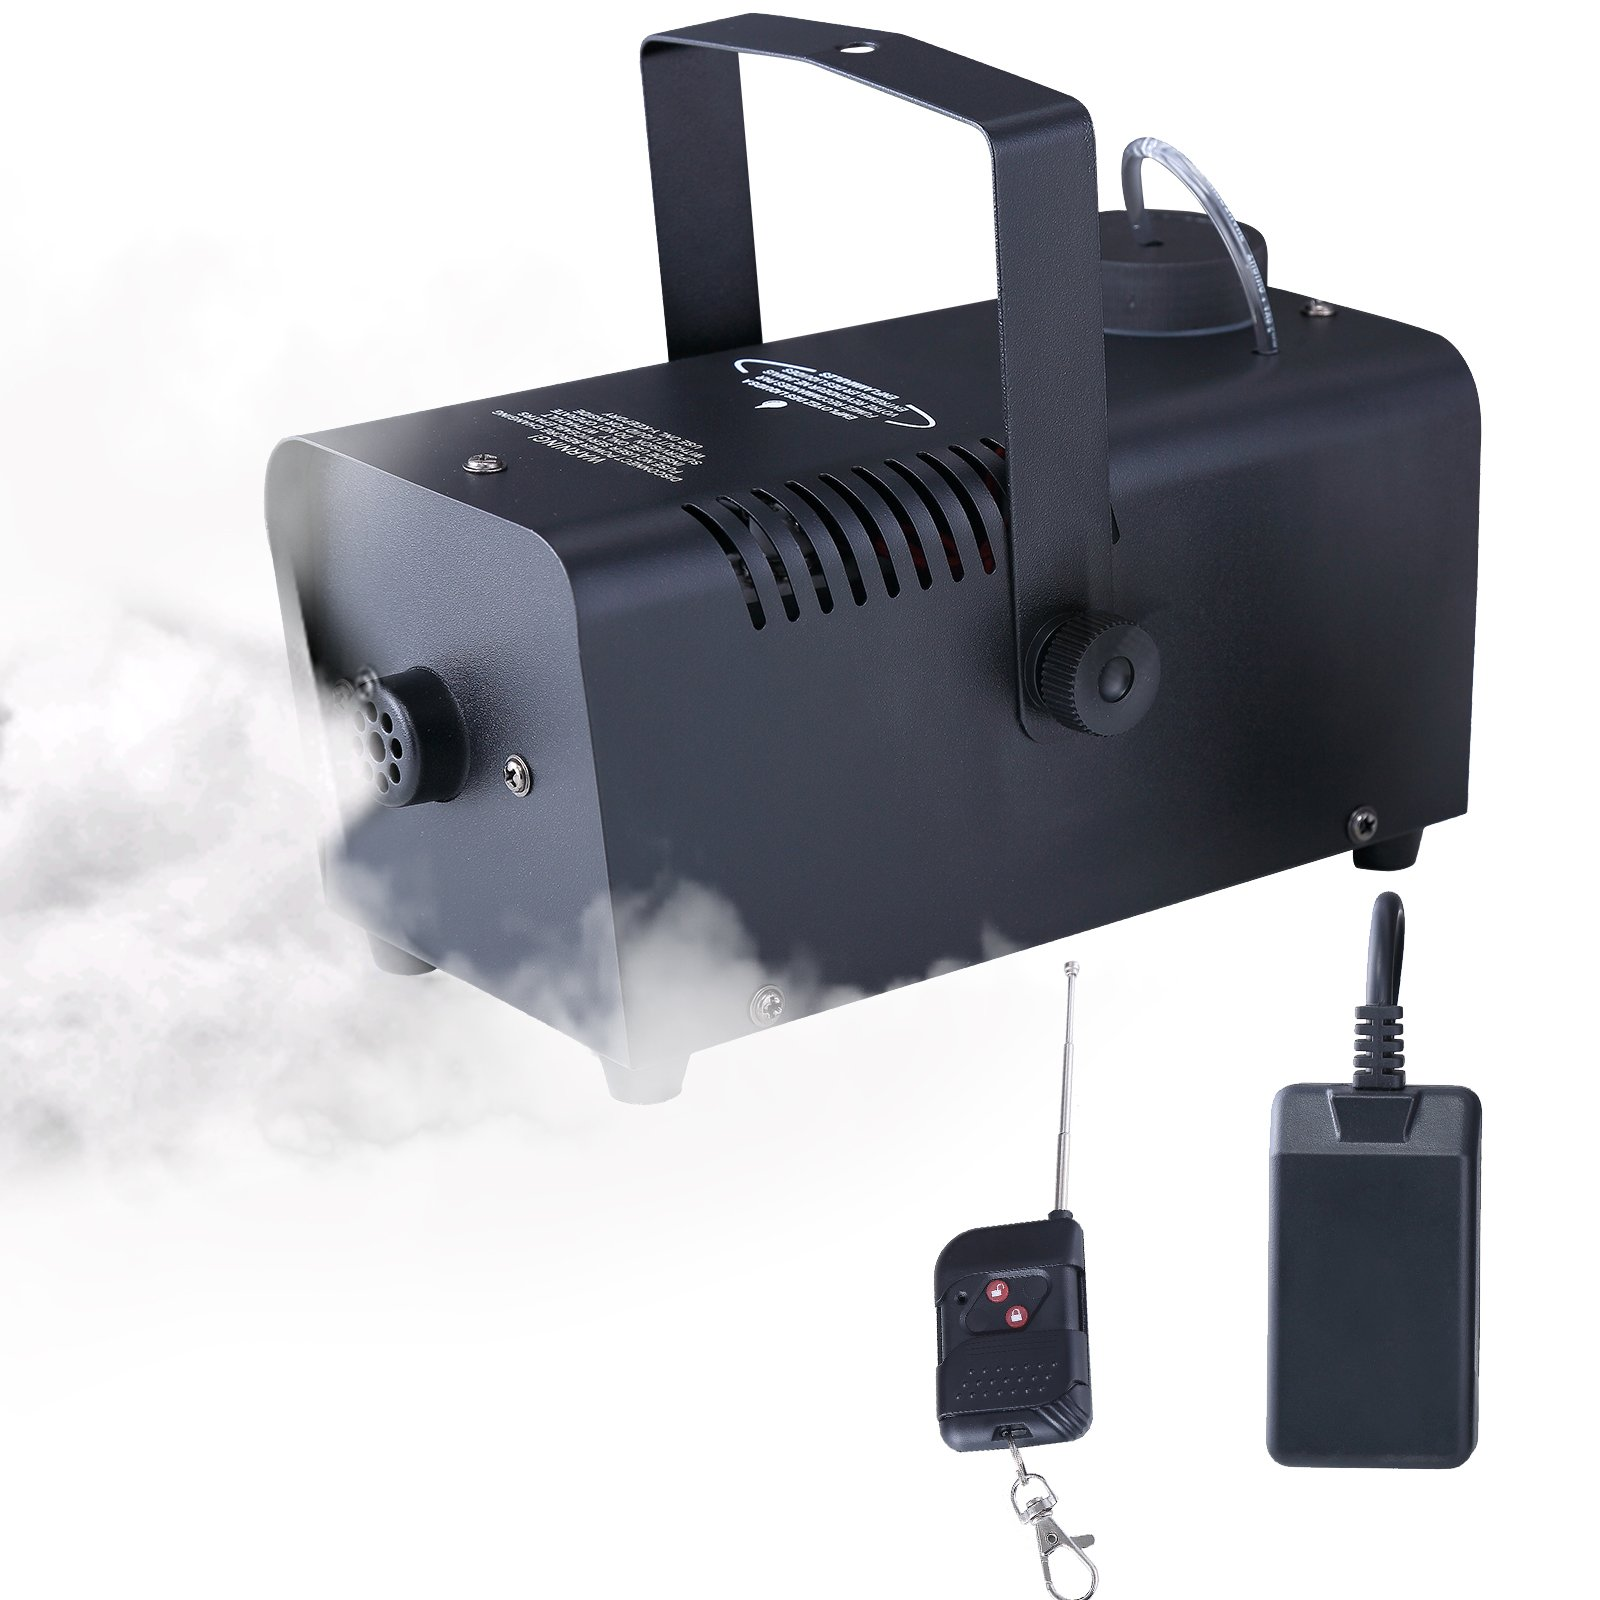 KUPPET 1500 CFM Fog Smoke Machine-400W Portable Stage Effect Machine w/Wireless Remote Control for Halloween, Holidays, Parties, Weddings, Live Concerts, Theaters etc-Metal Black